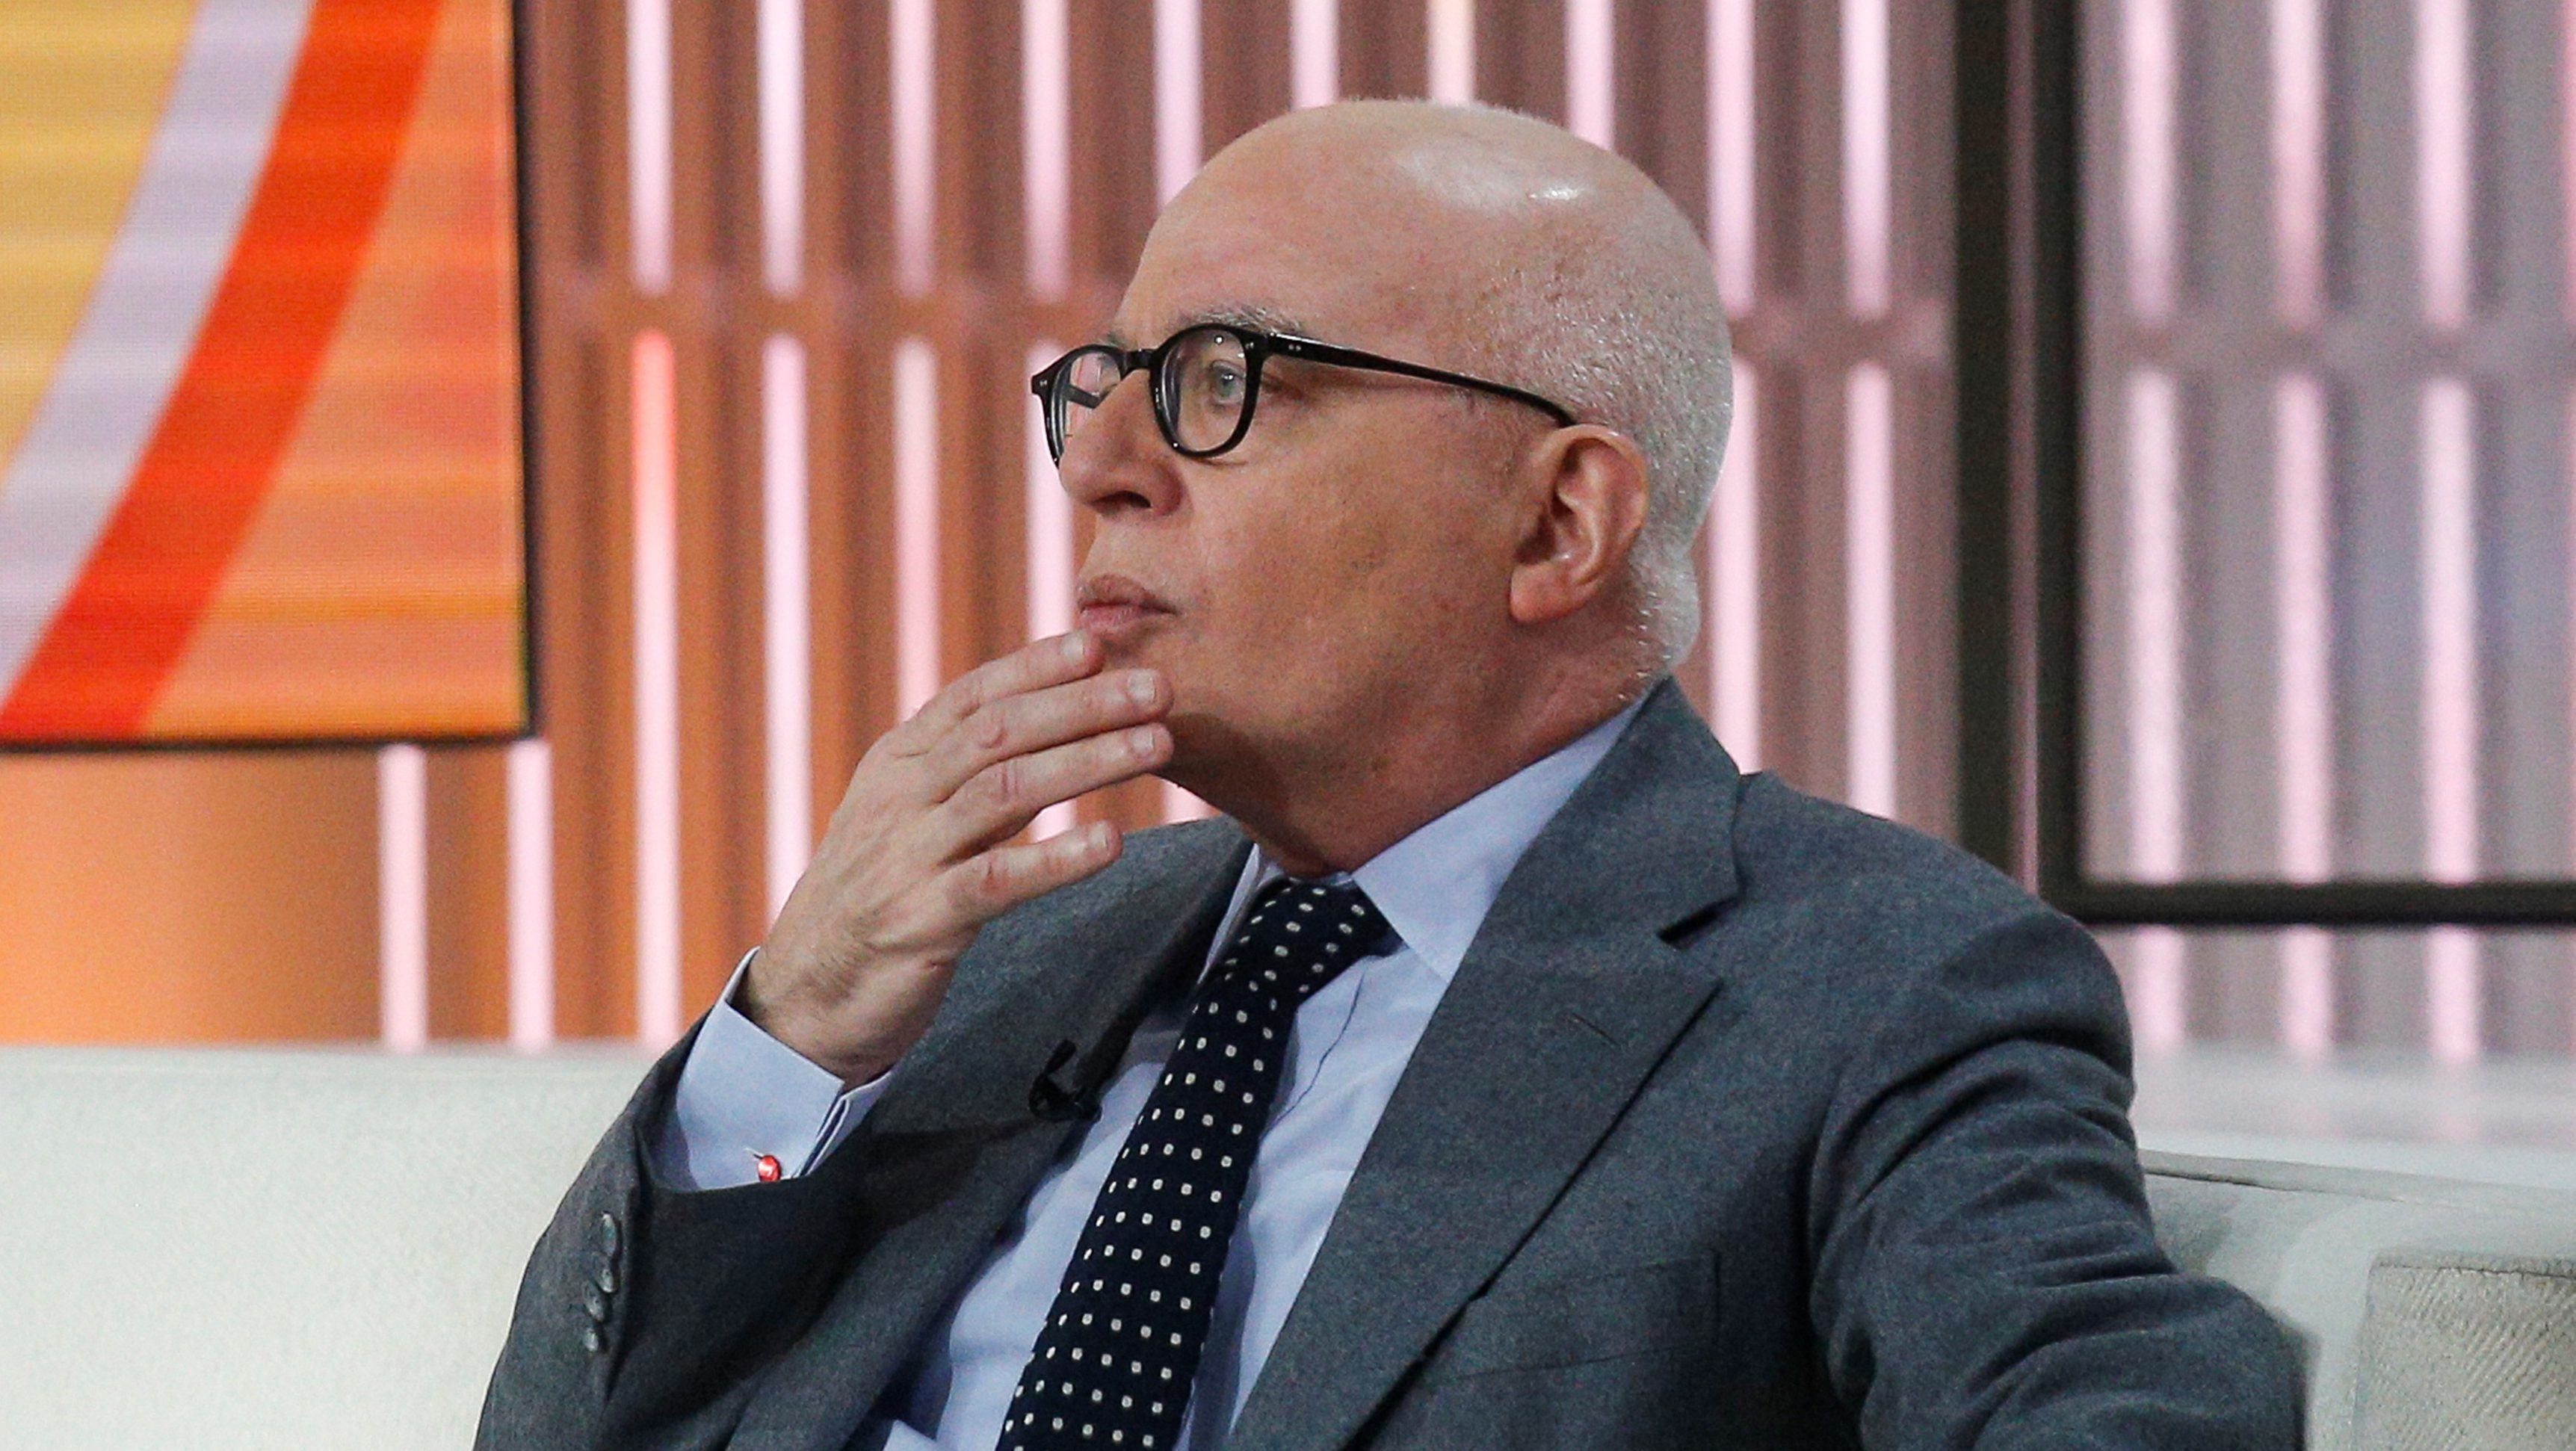 """Author Michael Wolff is seen on the set of NBC's 'Today' show prior to an interview about his book """"Fire and Fury: Inside the Trump White House"""" in New York City, U.S., January 5, 2018. REUTERS/Brendan McDermid - RC1F9A39E240"""